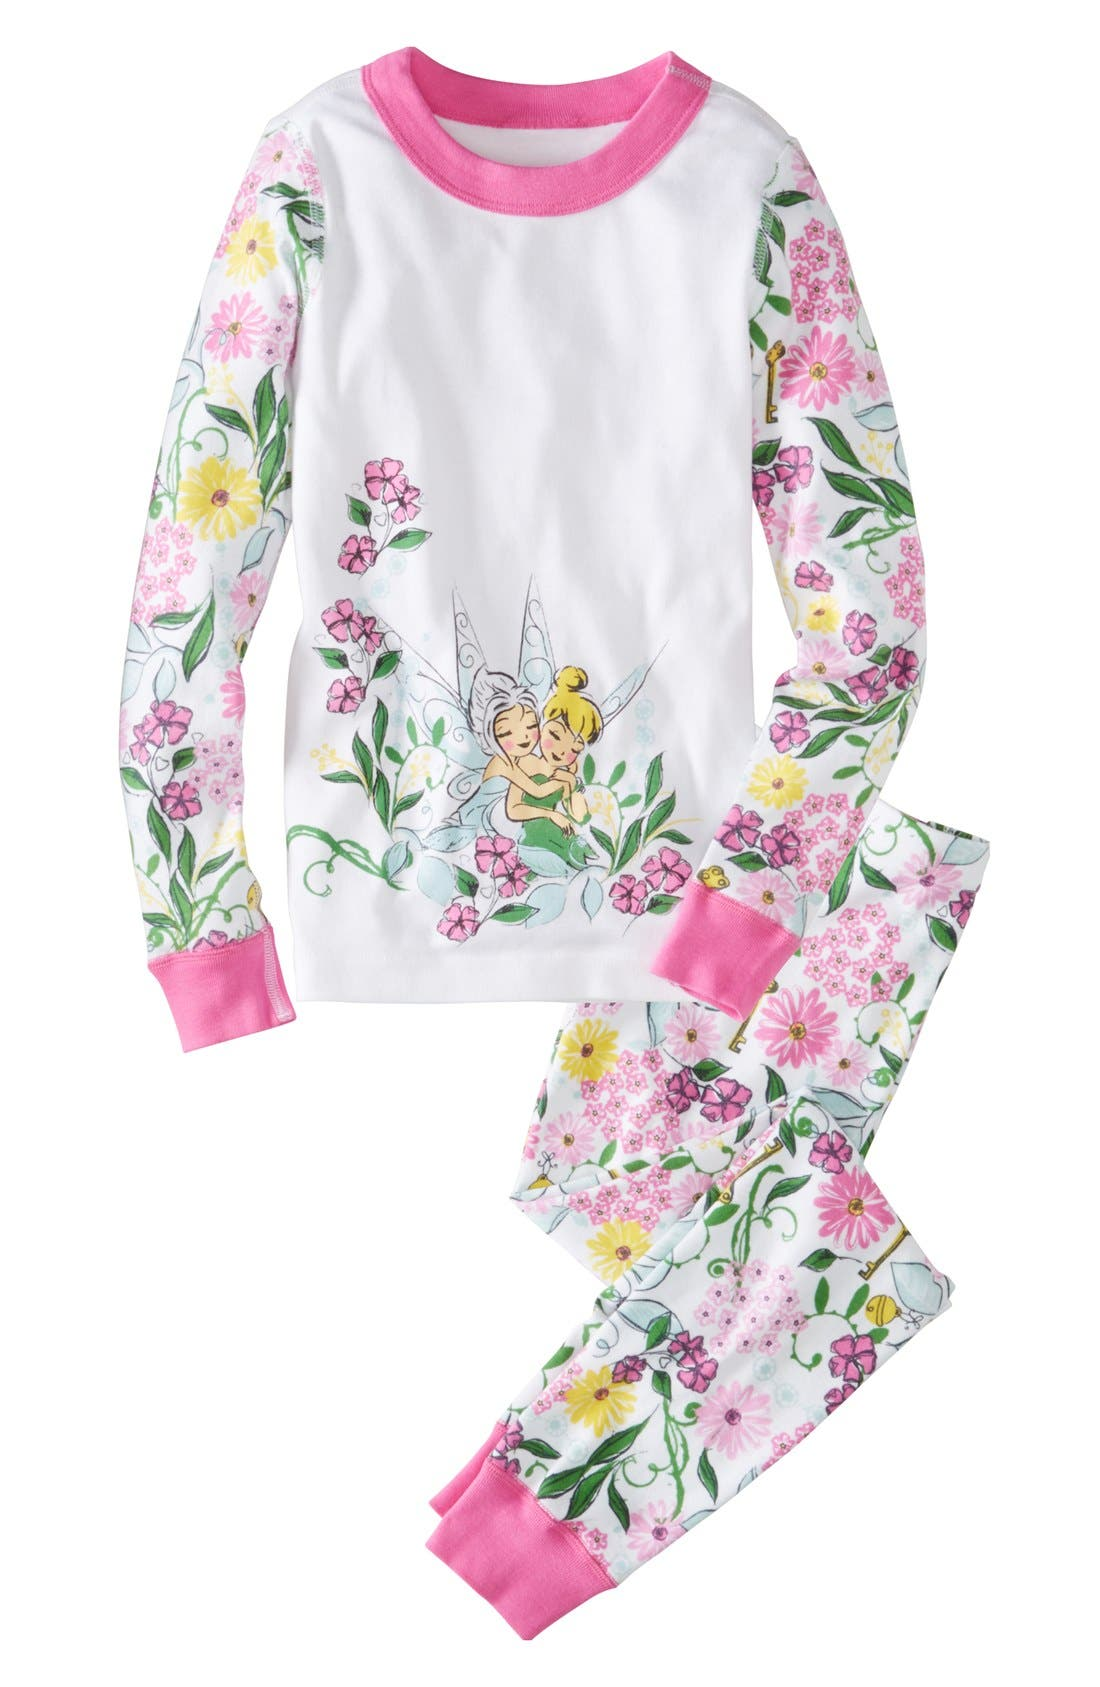 Alternate Image 1 Selected - Hanna Andersson 'Tink and Peri' Two-Piece Organic Cotton Fitted Pajamas (Little Girls & Big Girls)